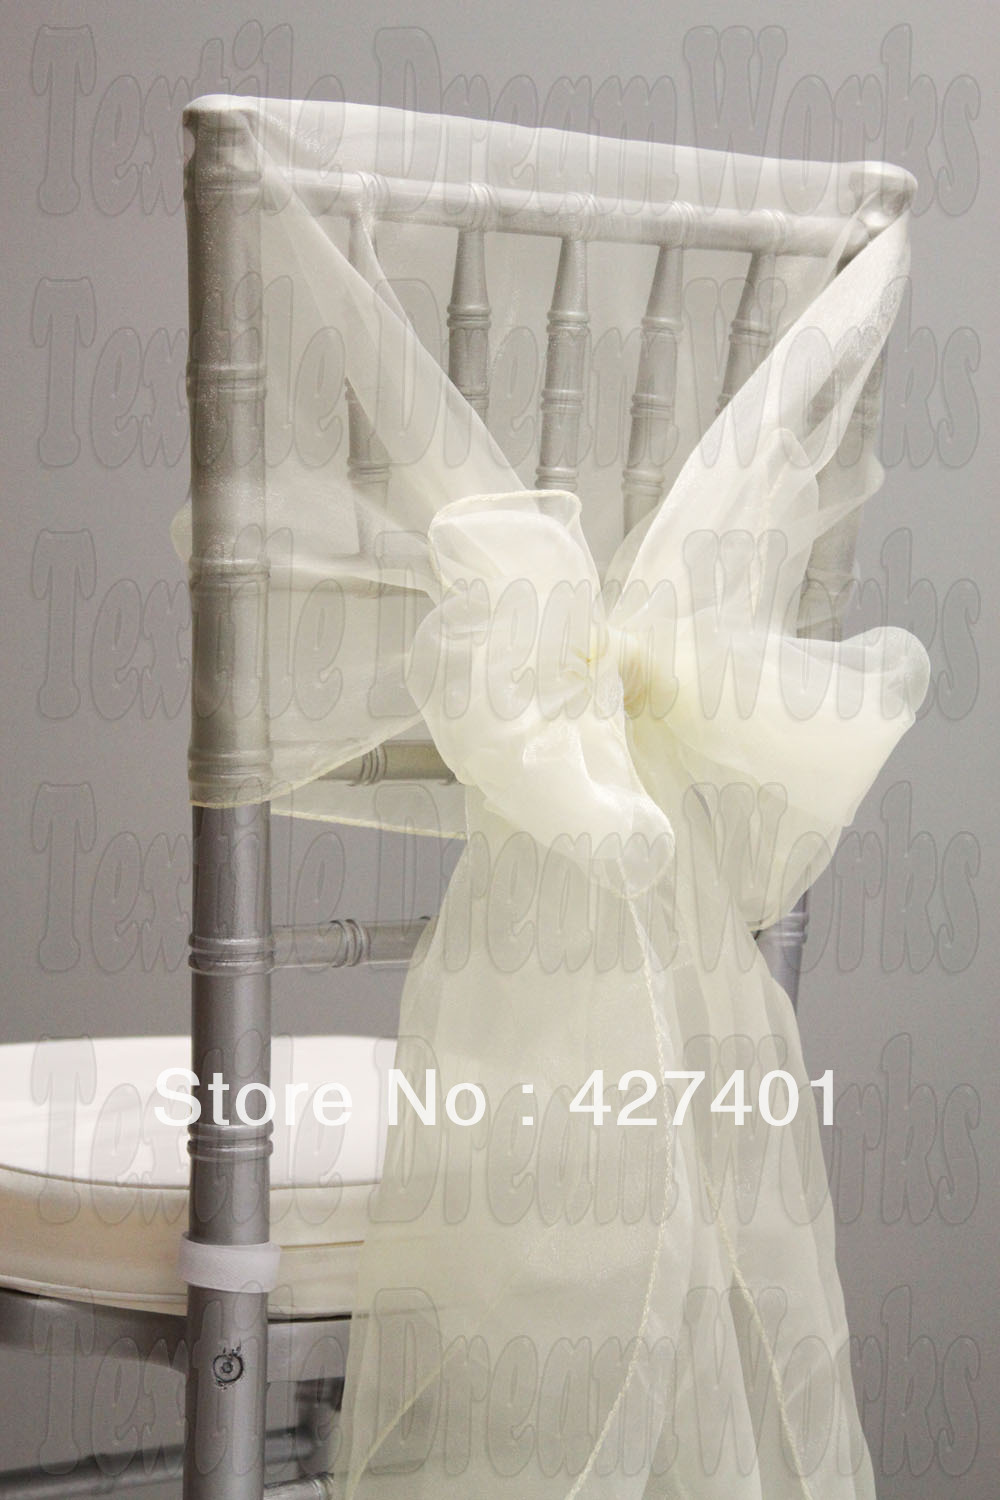 Hot Sale Ivory Snow Organza Chair Hoods / Chair Caps / Wrap Tie Back / Chair Sash For Wedding Eventu0026Partyu0026Banquet Decoration-in Sashes from Home u0026 Garden on ... & Hot Sale Ivory Snow Organza Chair Hoods / Chair Caps / Wrap Tie Back ...